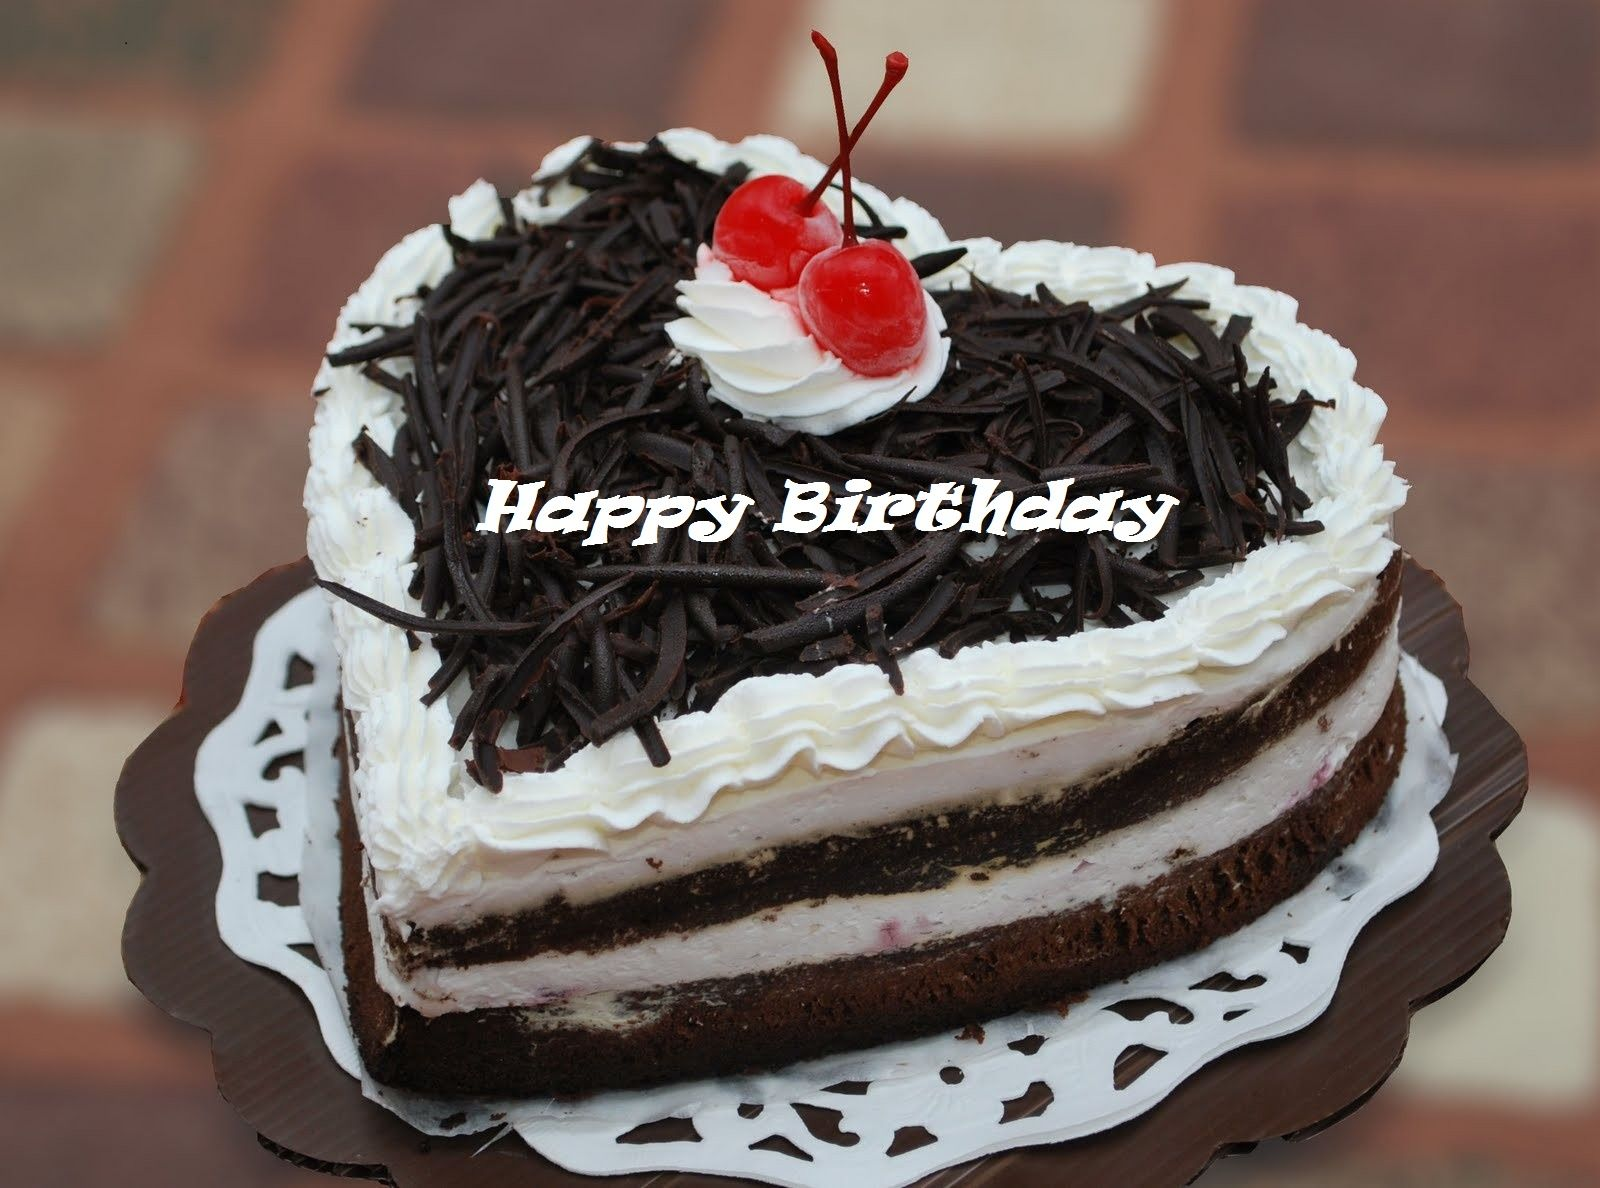 Happy Birthday Cake Pic ~ Happy birthday cake images wallpaper and pictures happy